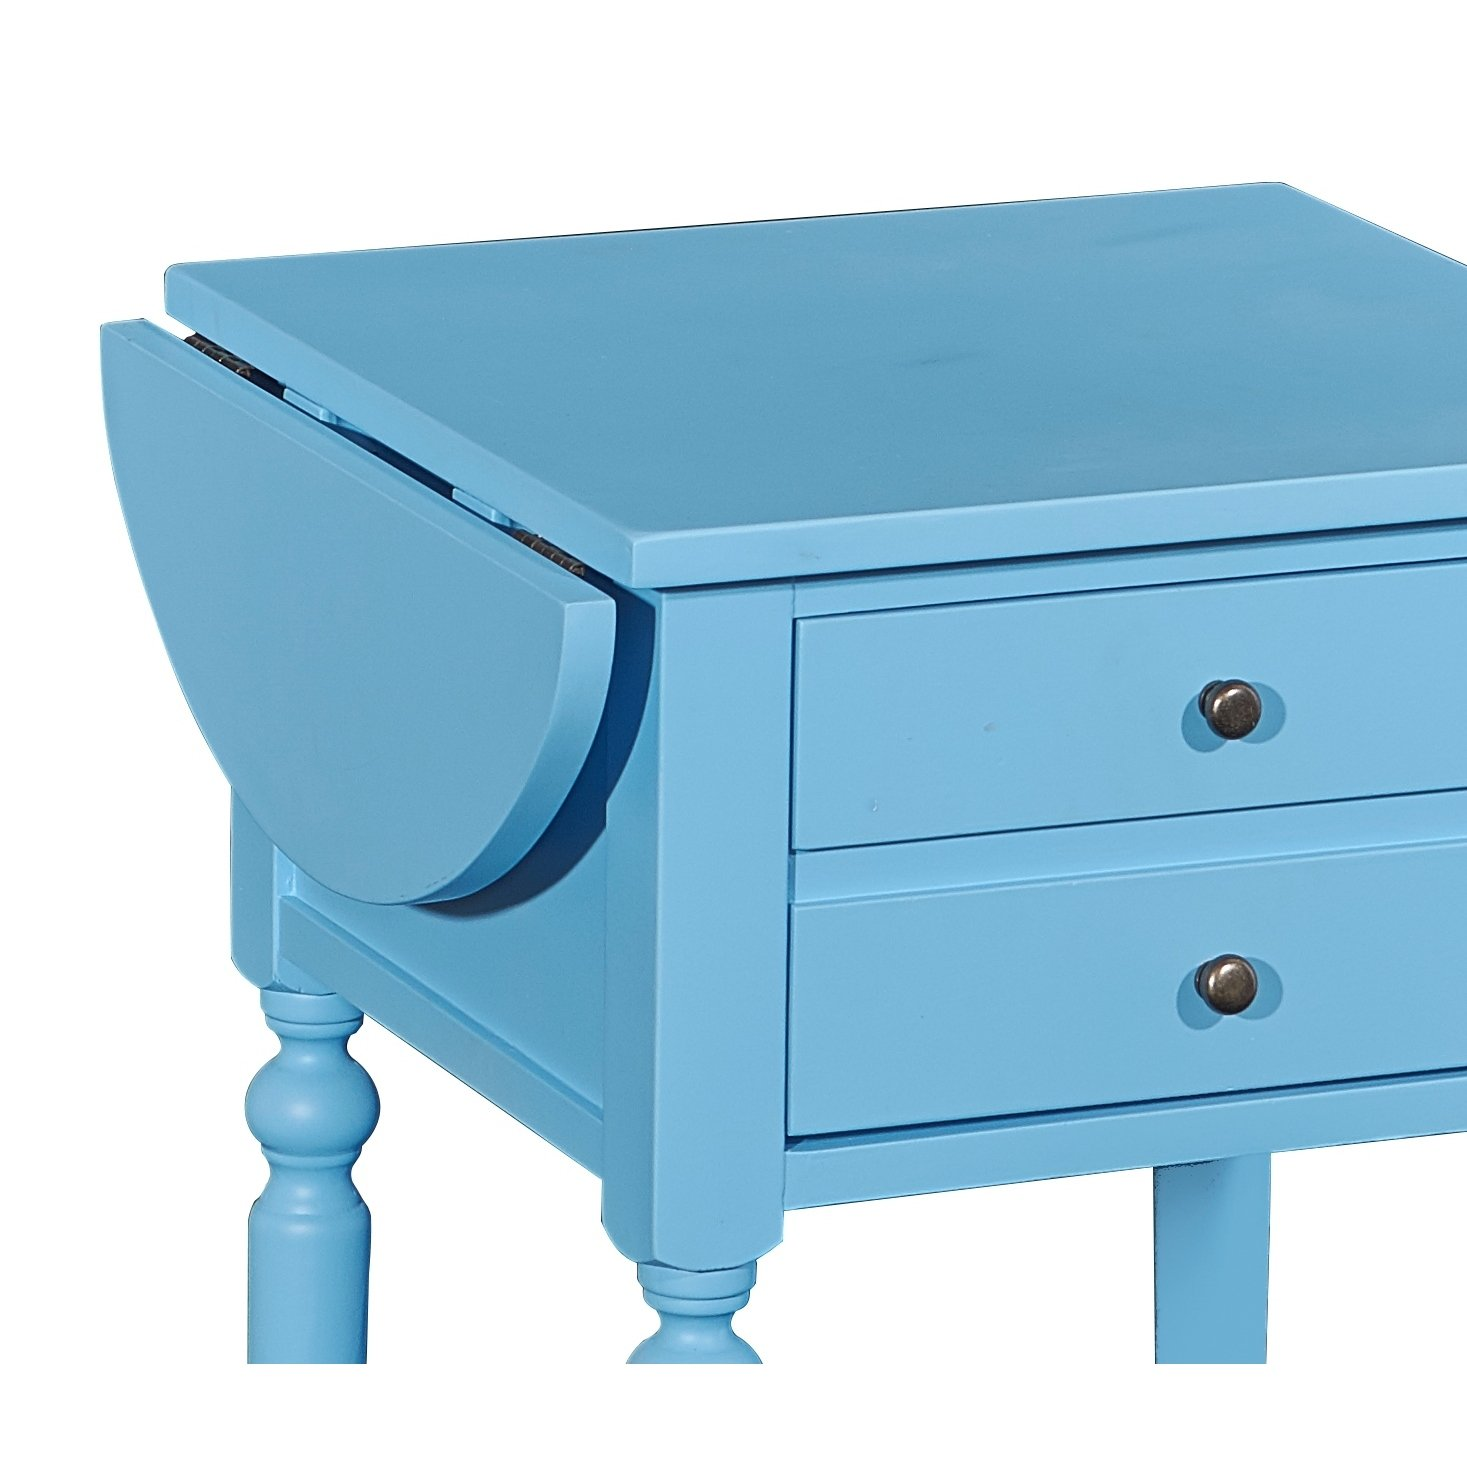 shiloh ocean blue accent table with dropleaf free shipping today drop leaf nautical desk tiffany lamp shade replacement ikea living room cabinets gaming dock modern marble coffee